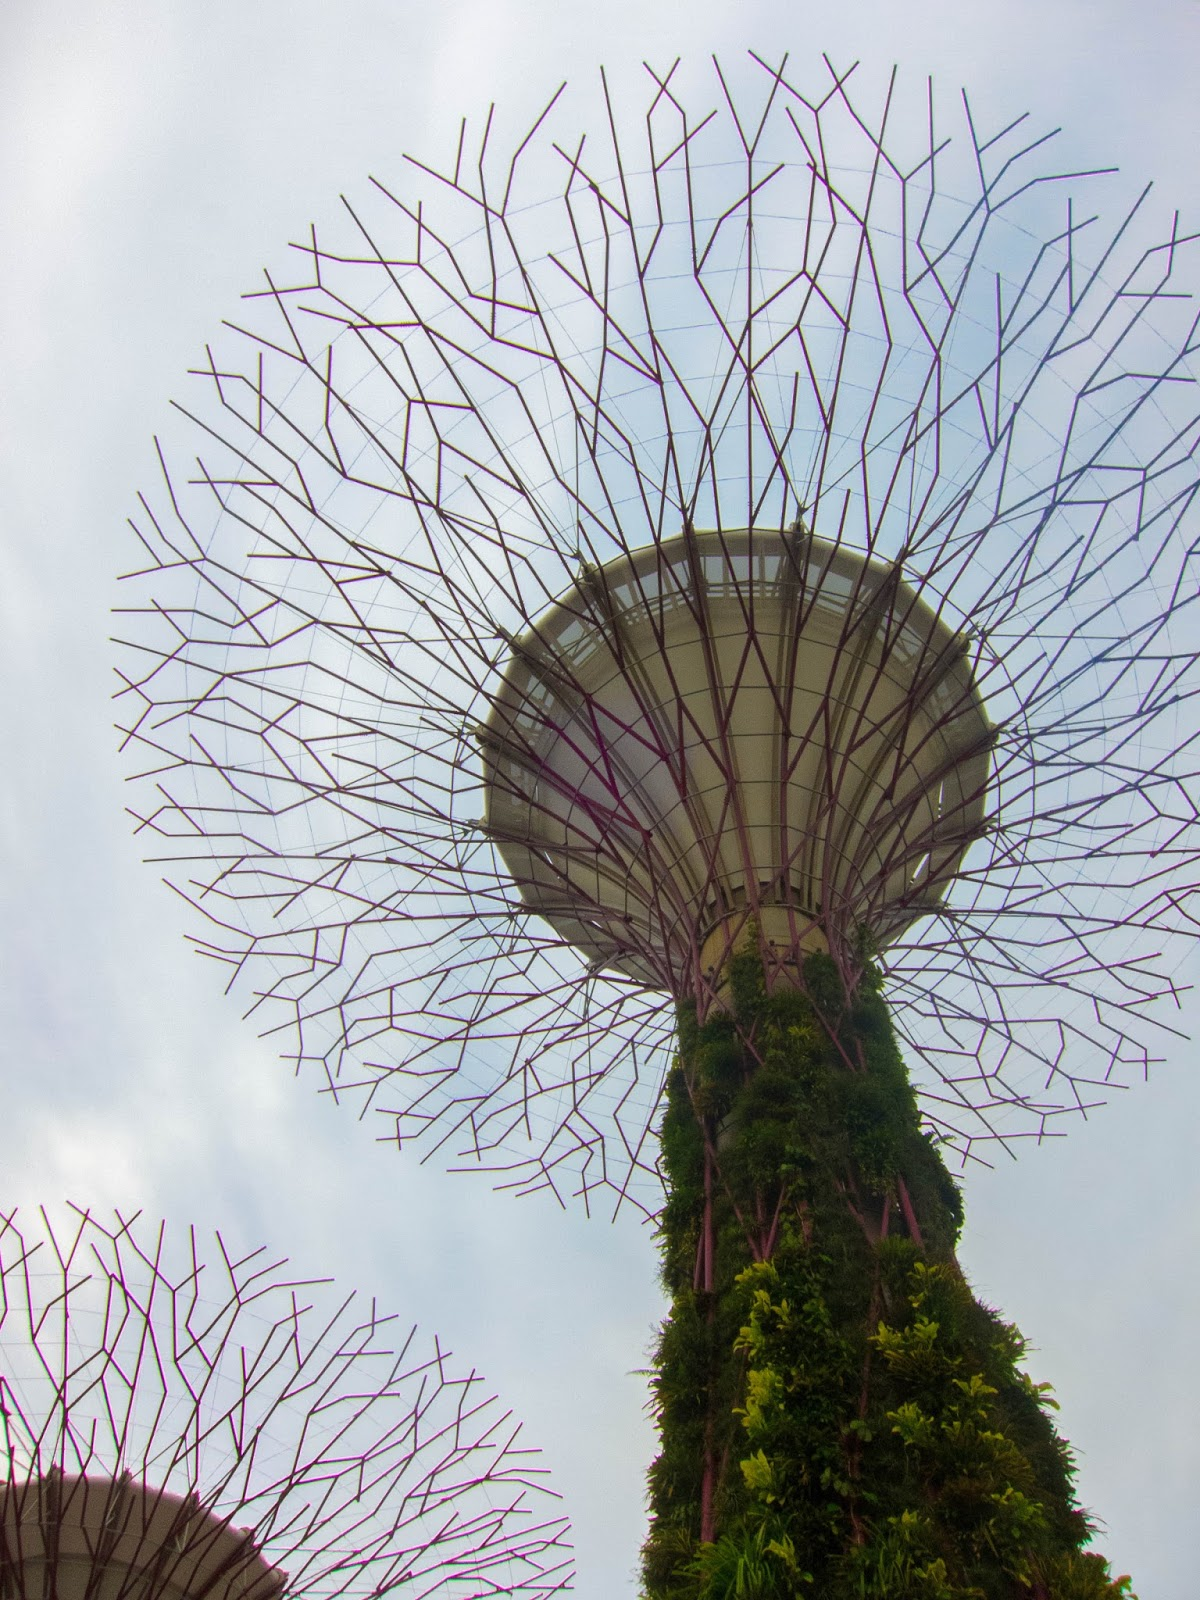 Supertree Grove, Gardens by the Bay in Singapore | Svelte Salivations - Travel